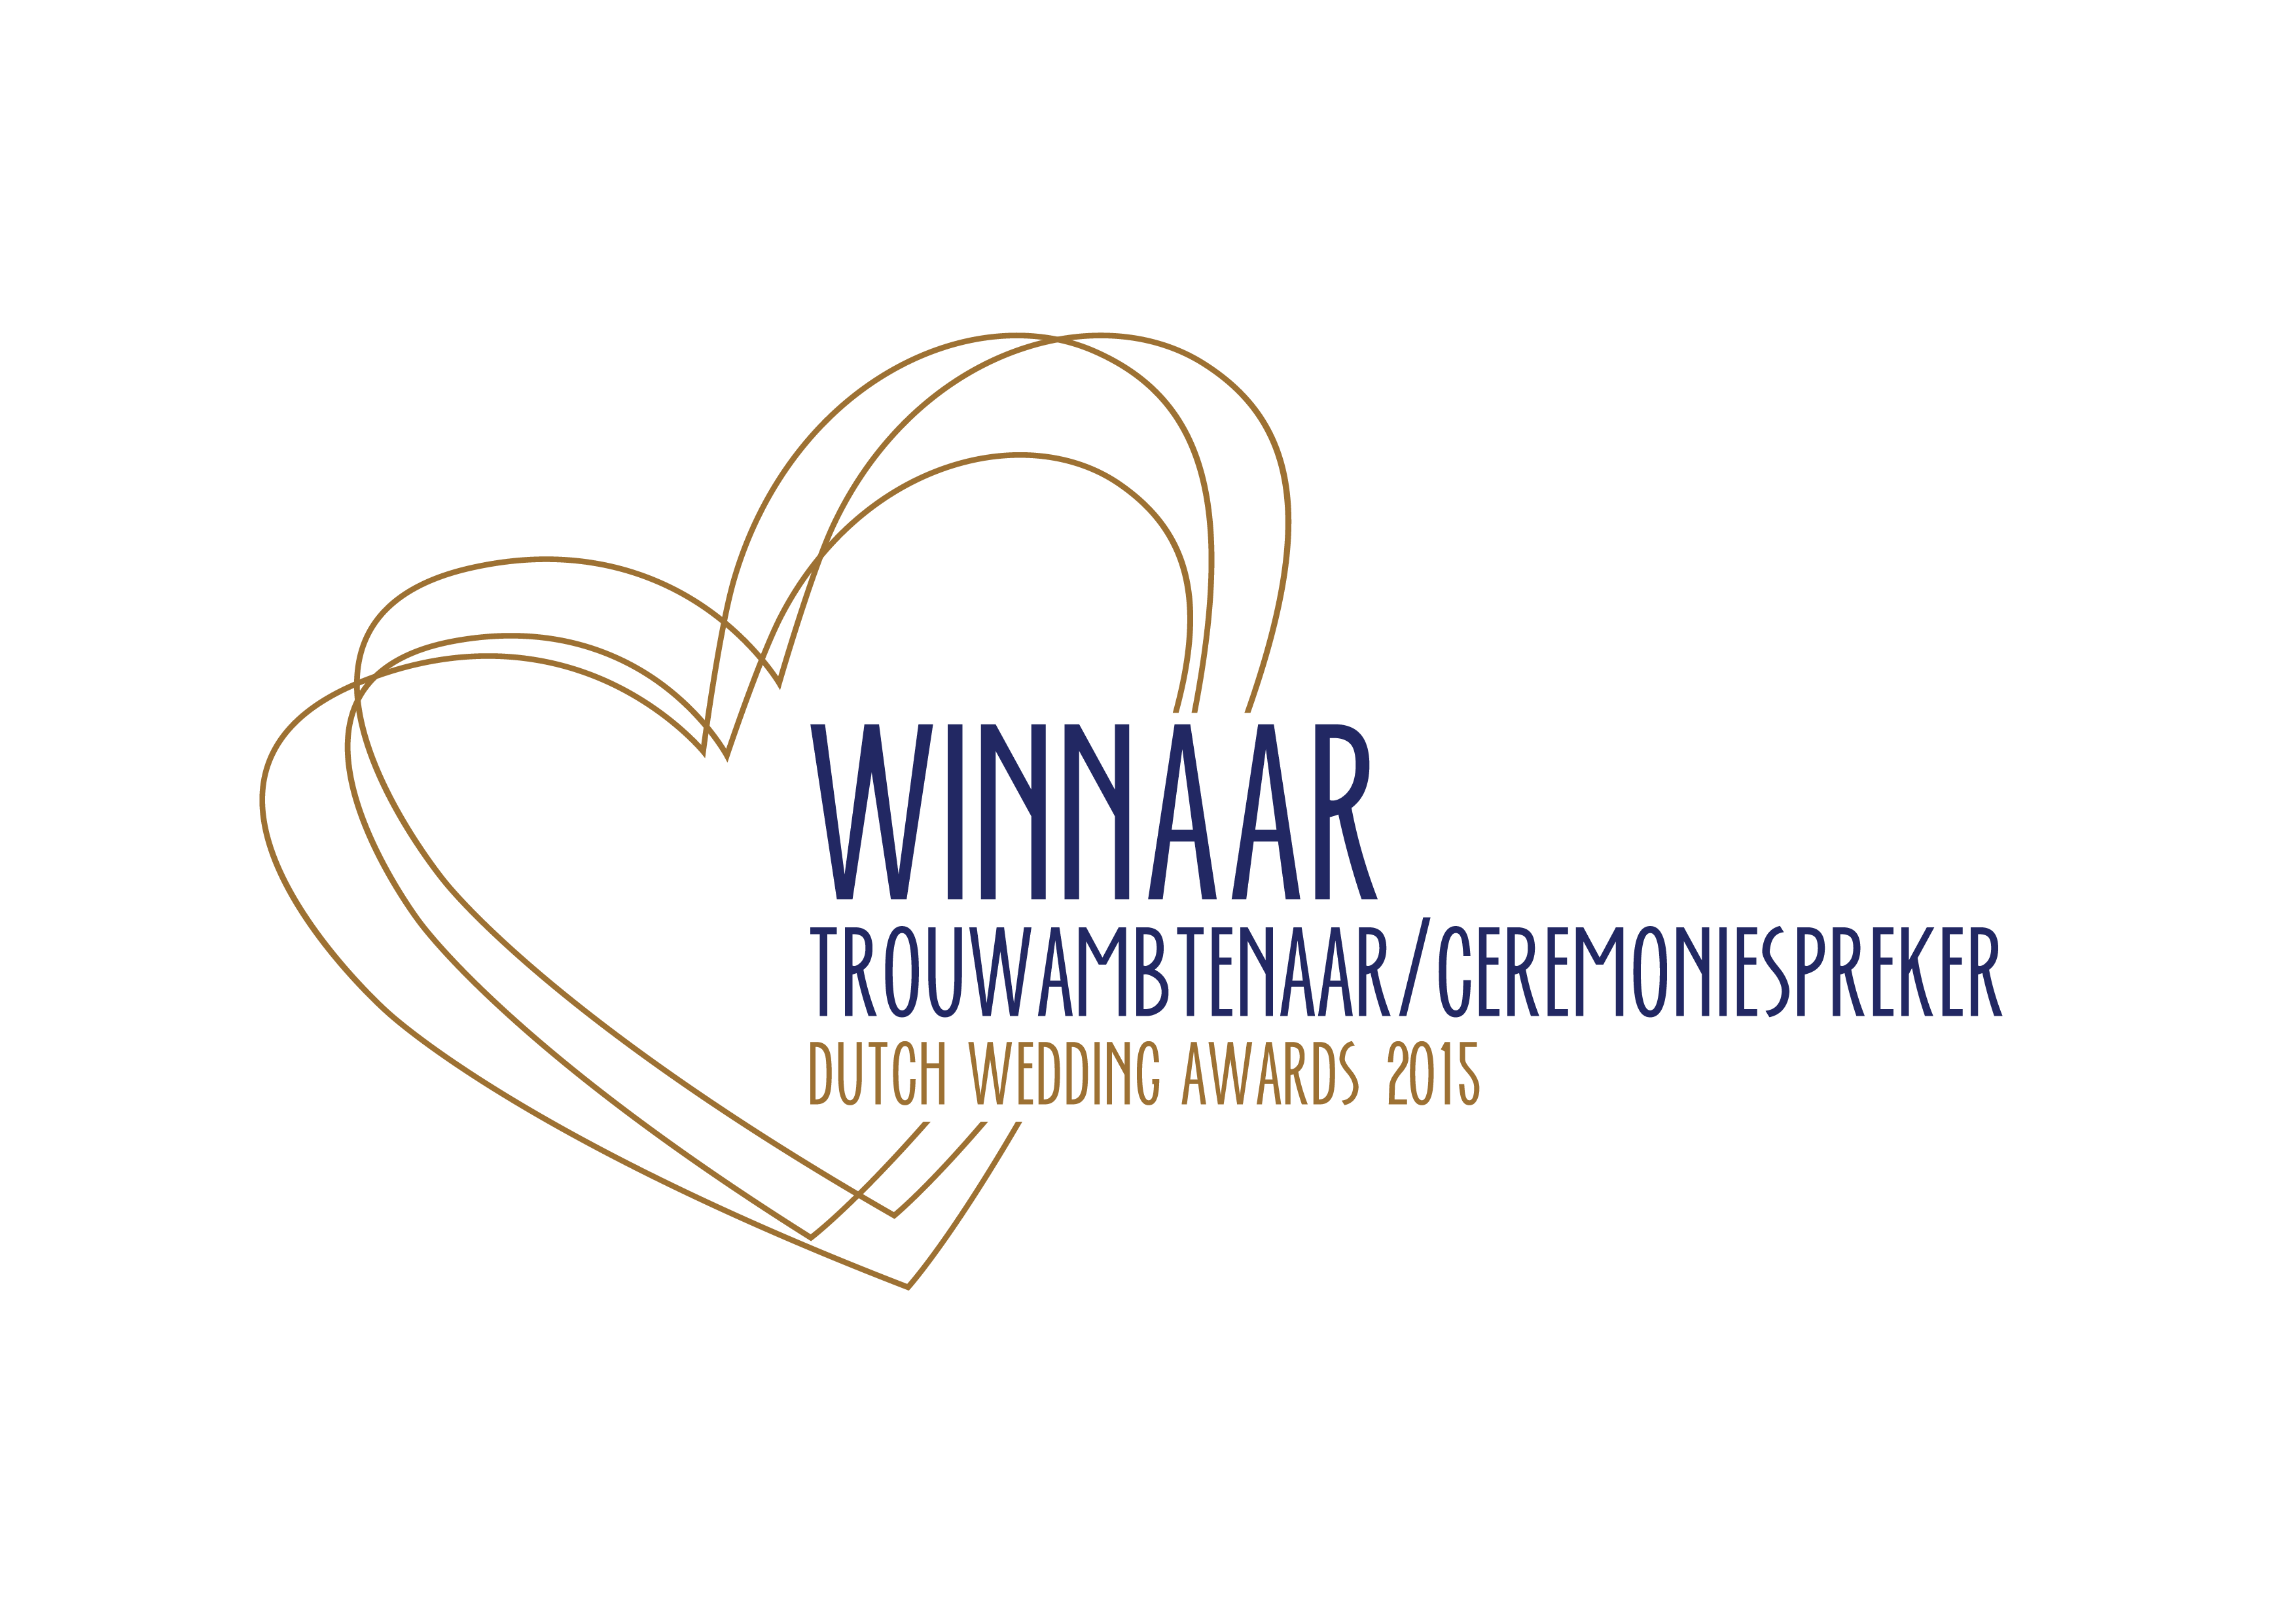 Winnaar Dutch Wedding Award 2015 categorie Trouwambtenaar/Ceremoniespreker